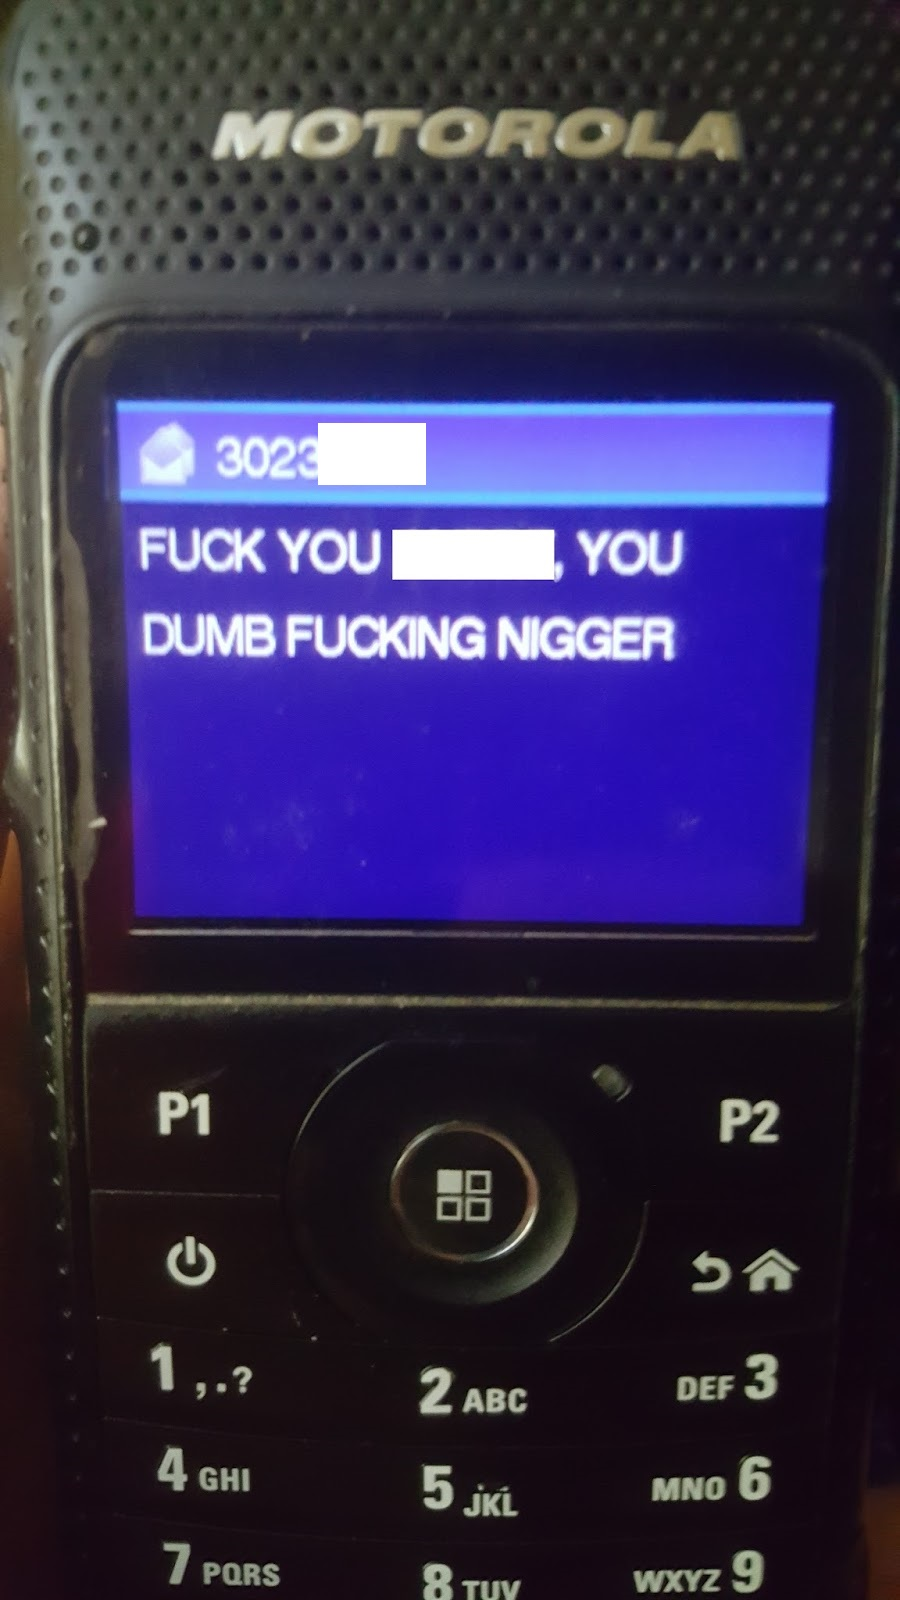 Ham Toronto Abusive Audio On Tfmcs Belligerent Amateur Radio Fm Jammer The Disgrace To This Person How Sad And Group Of Losers